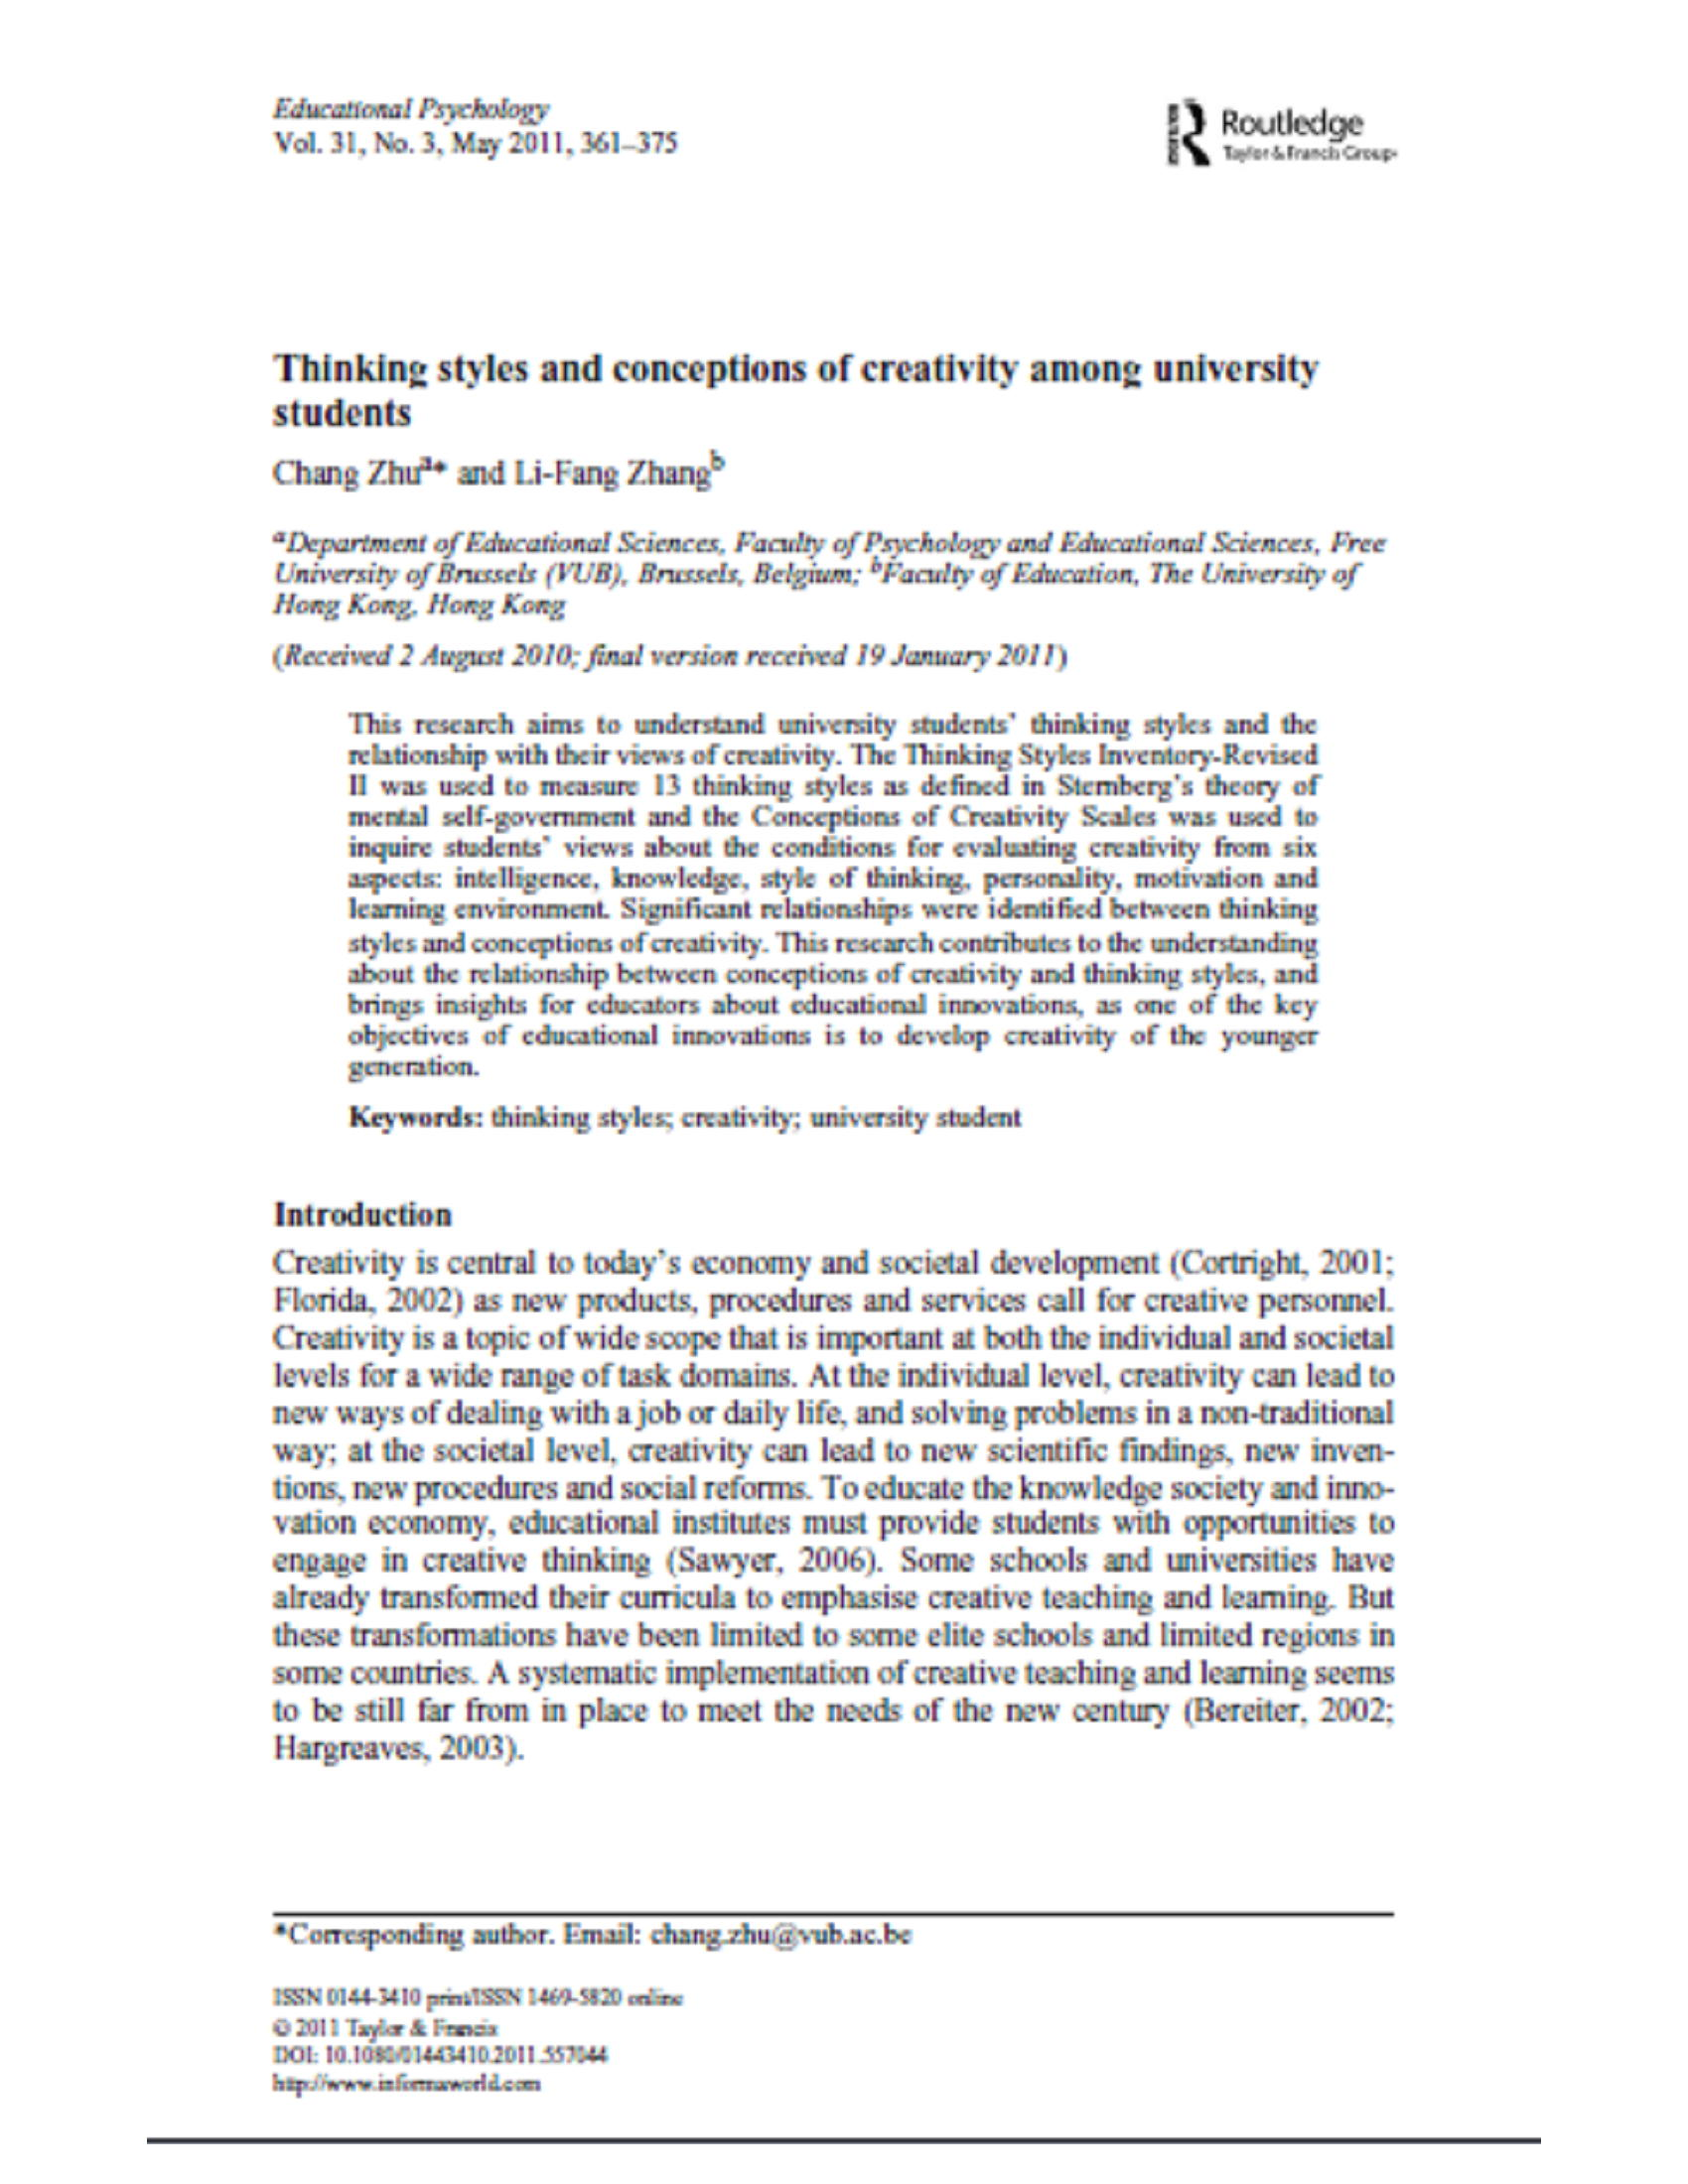 Thinking styles and conceptions of creativity among university students 16